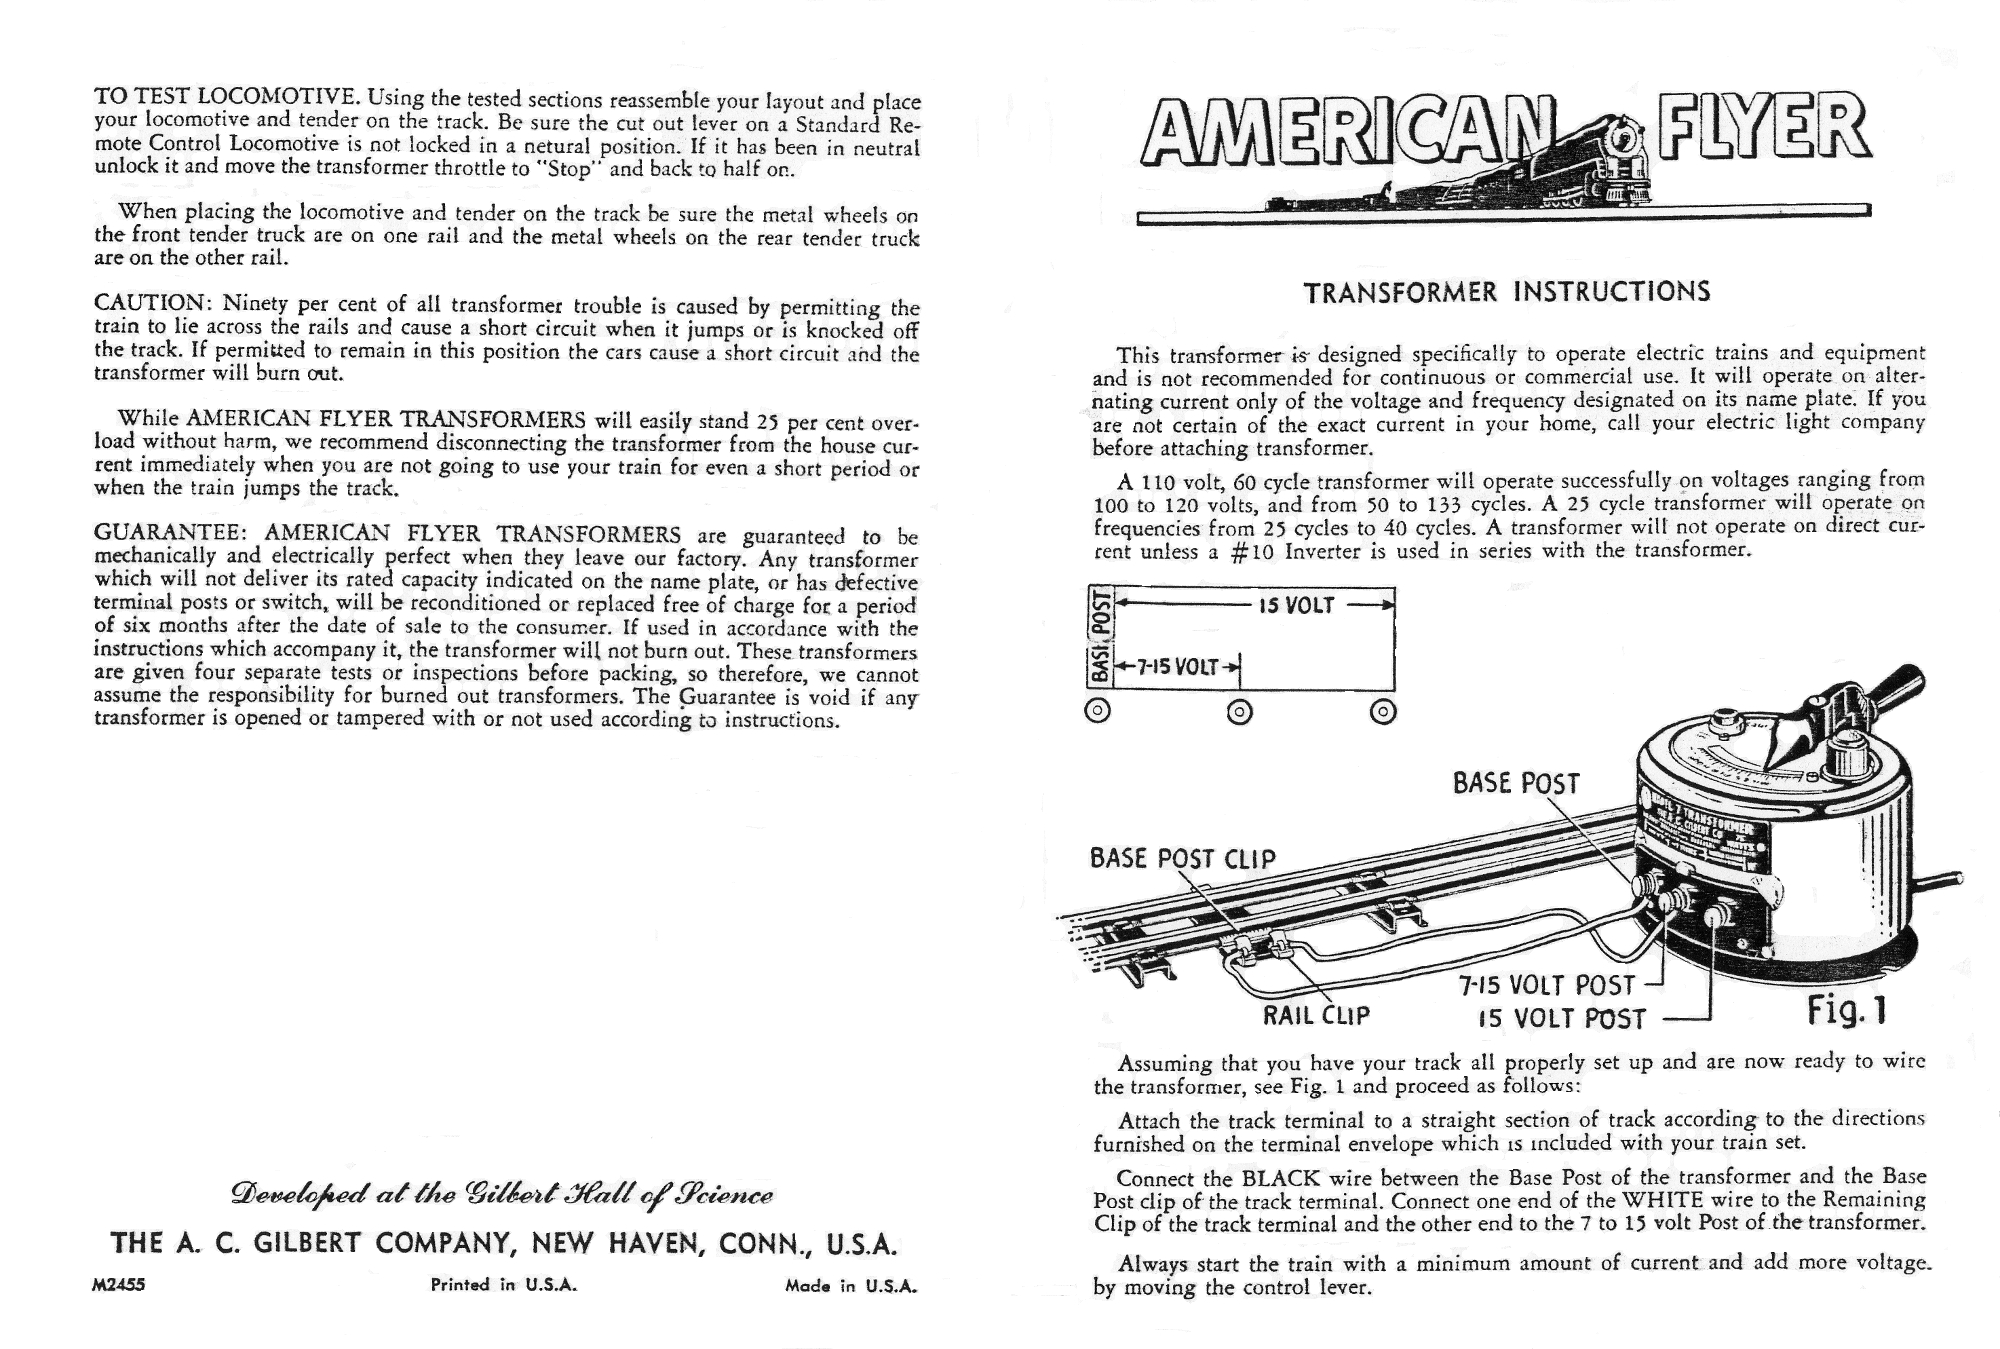 M2455 Transformer Instructions Lo Res 001 american flyer transformer instructions traindr  at n-0.co